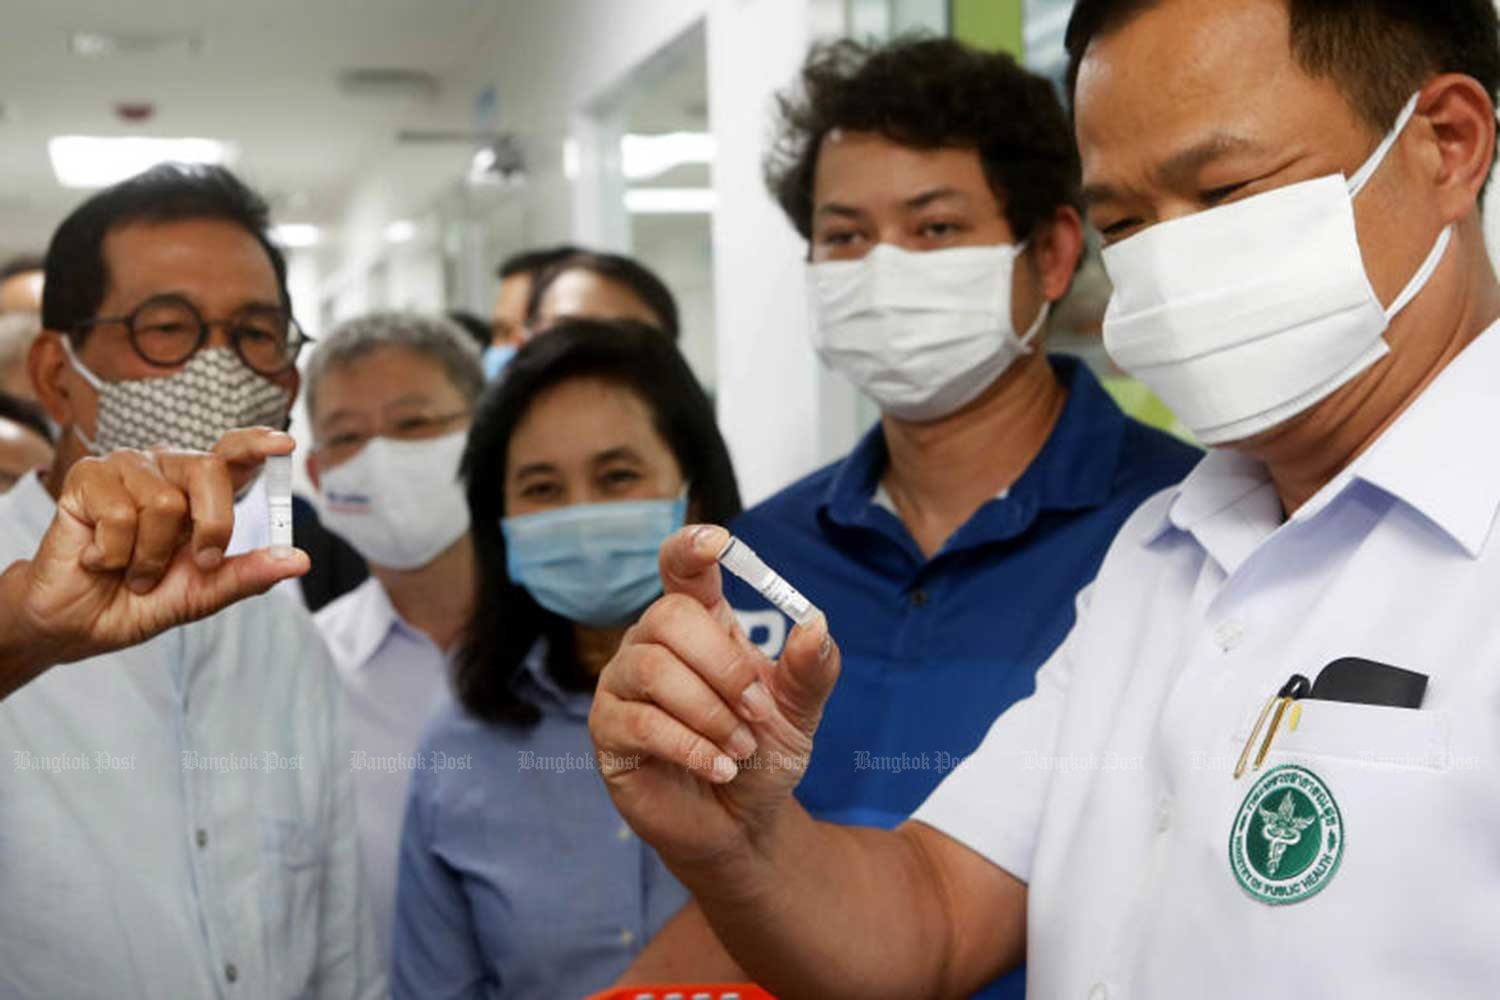 Pulic Health Minister Anutin Charnvirakul, right, looks at solution samples at the Siam Bioscience Group, which produces Covid-19 test kits, on June 1. (Photo: Pattarapong Chatpattarasill)